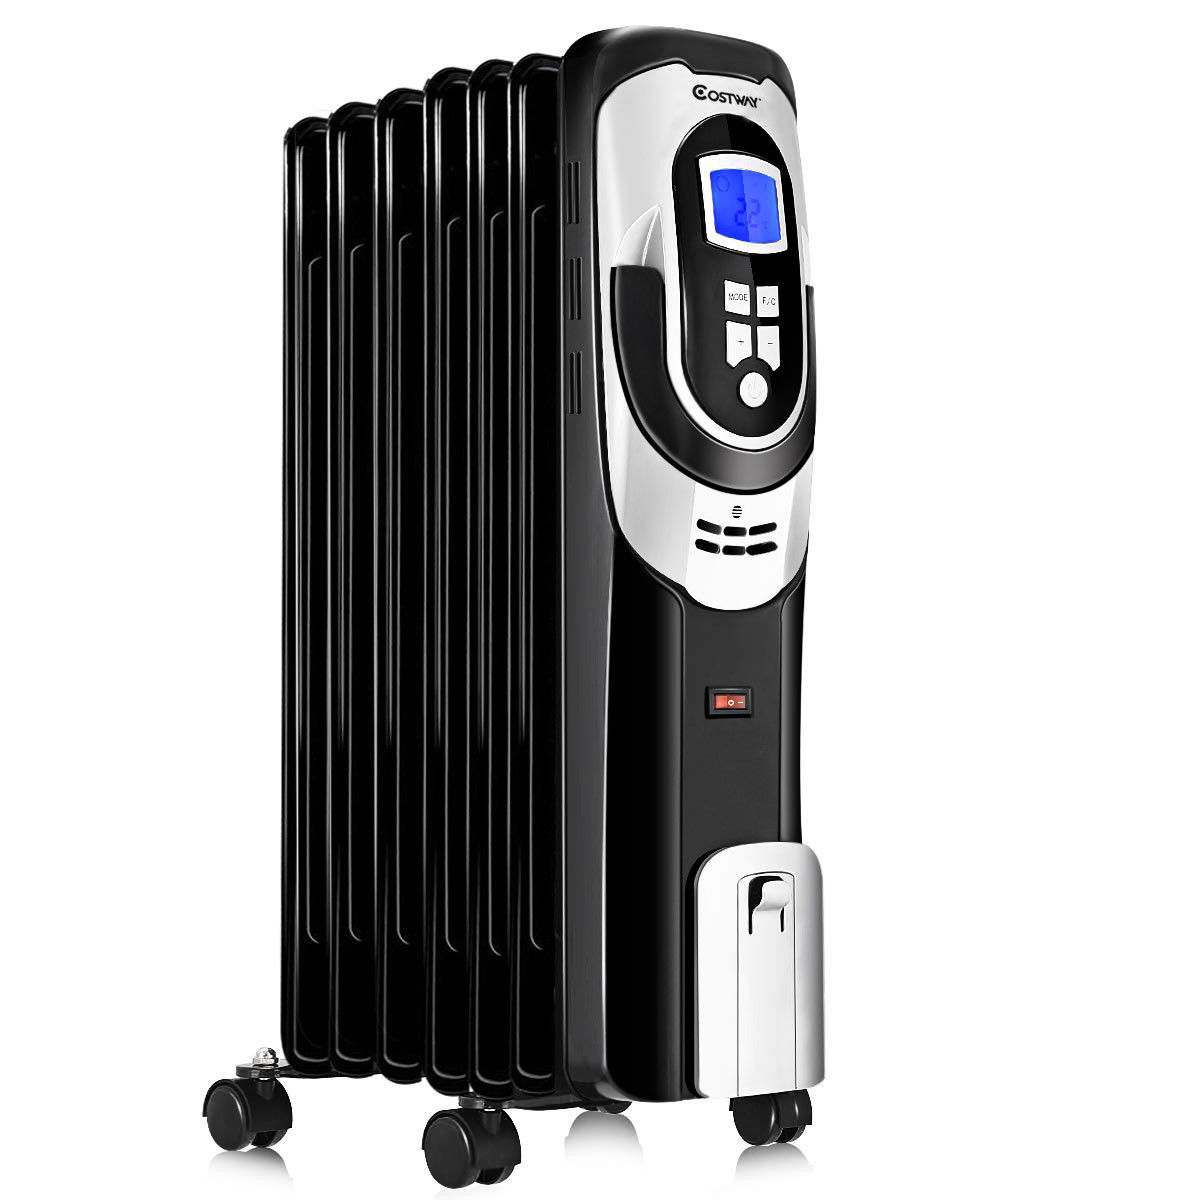 Costway 1500W Electric Oil Filled Radiator Heater LCD 7-Fin Timer Safety Shut-Off